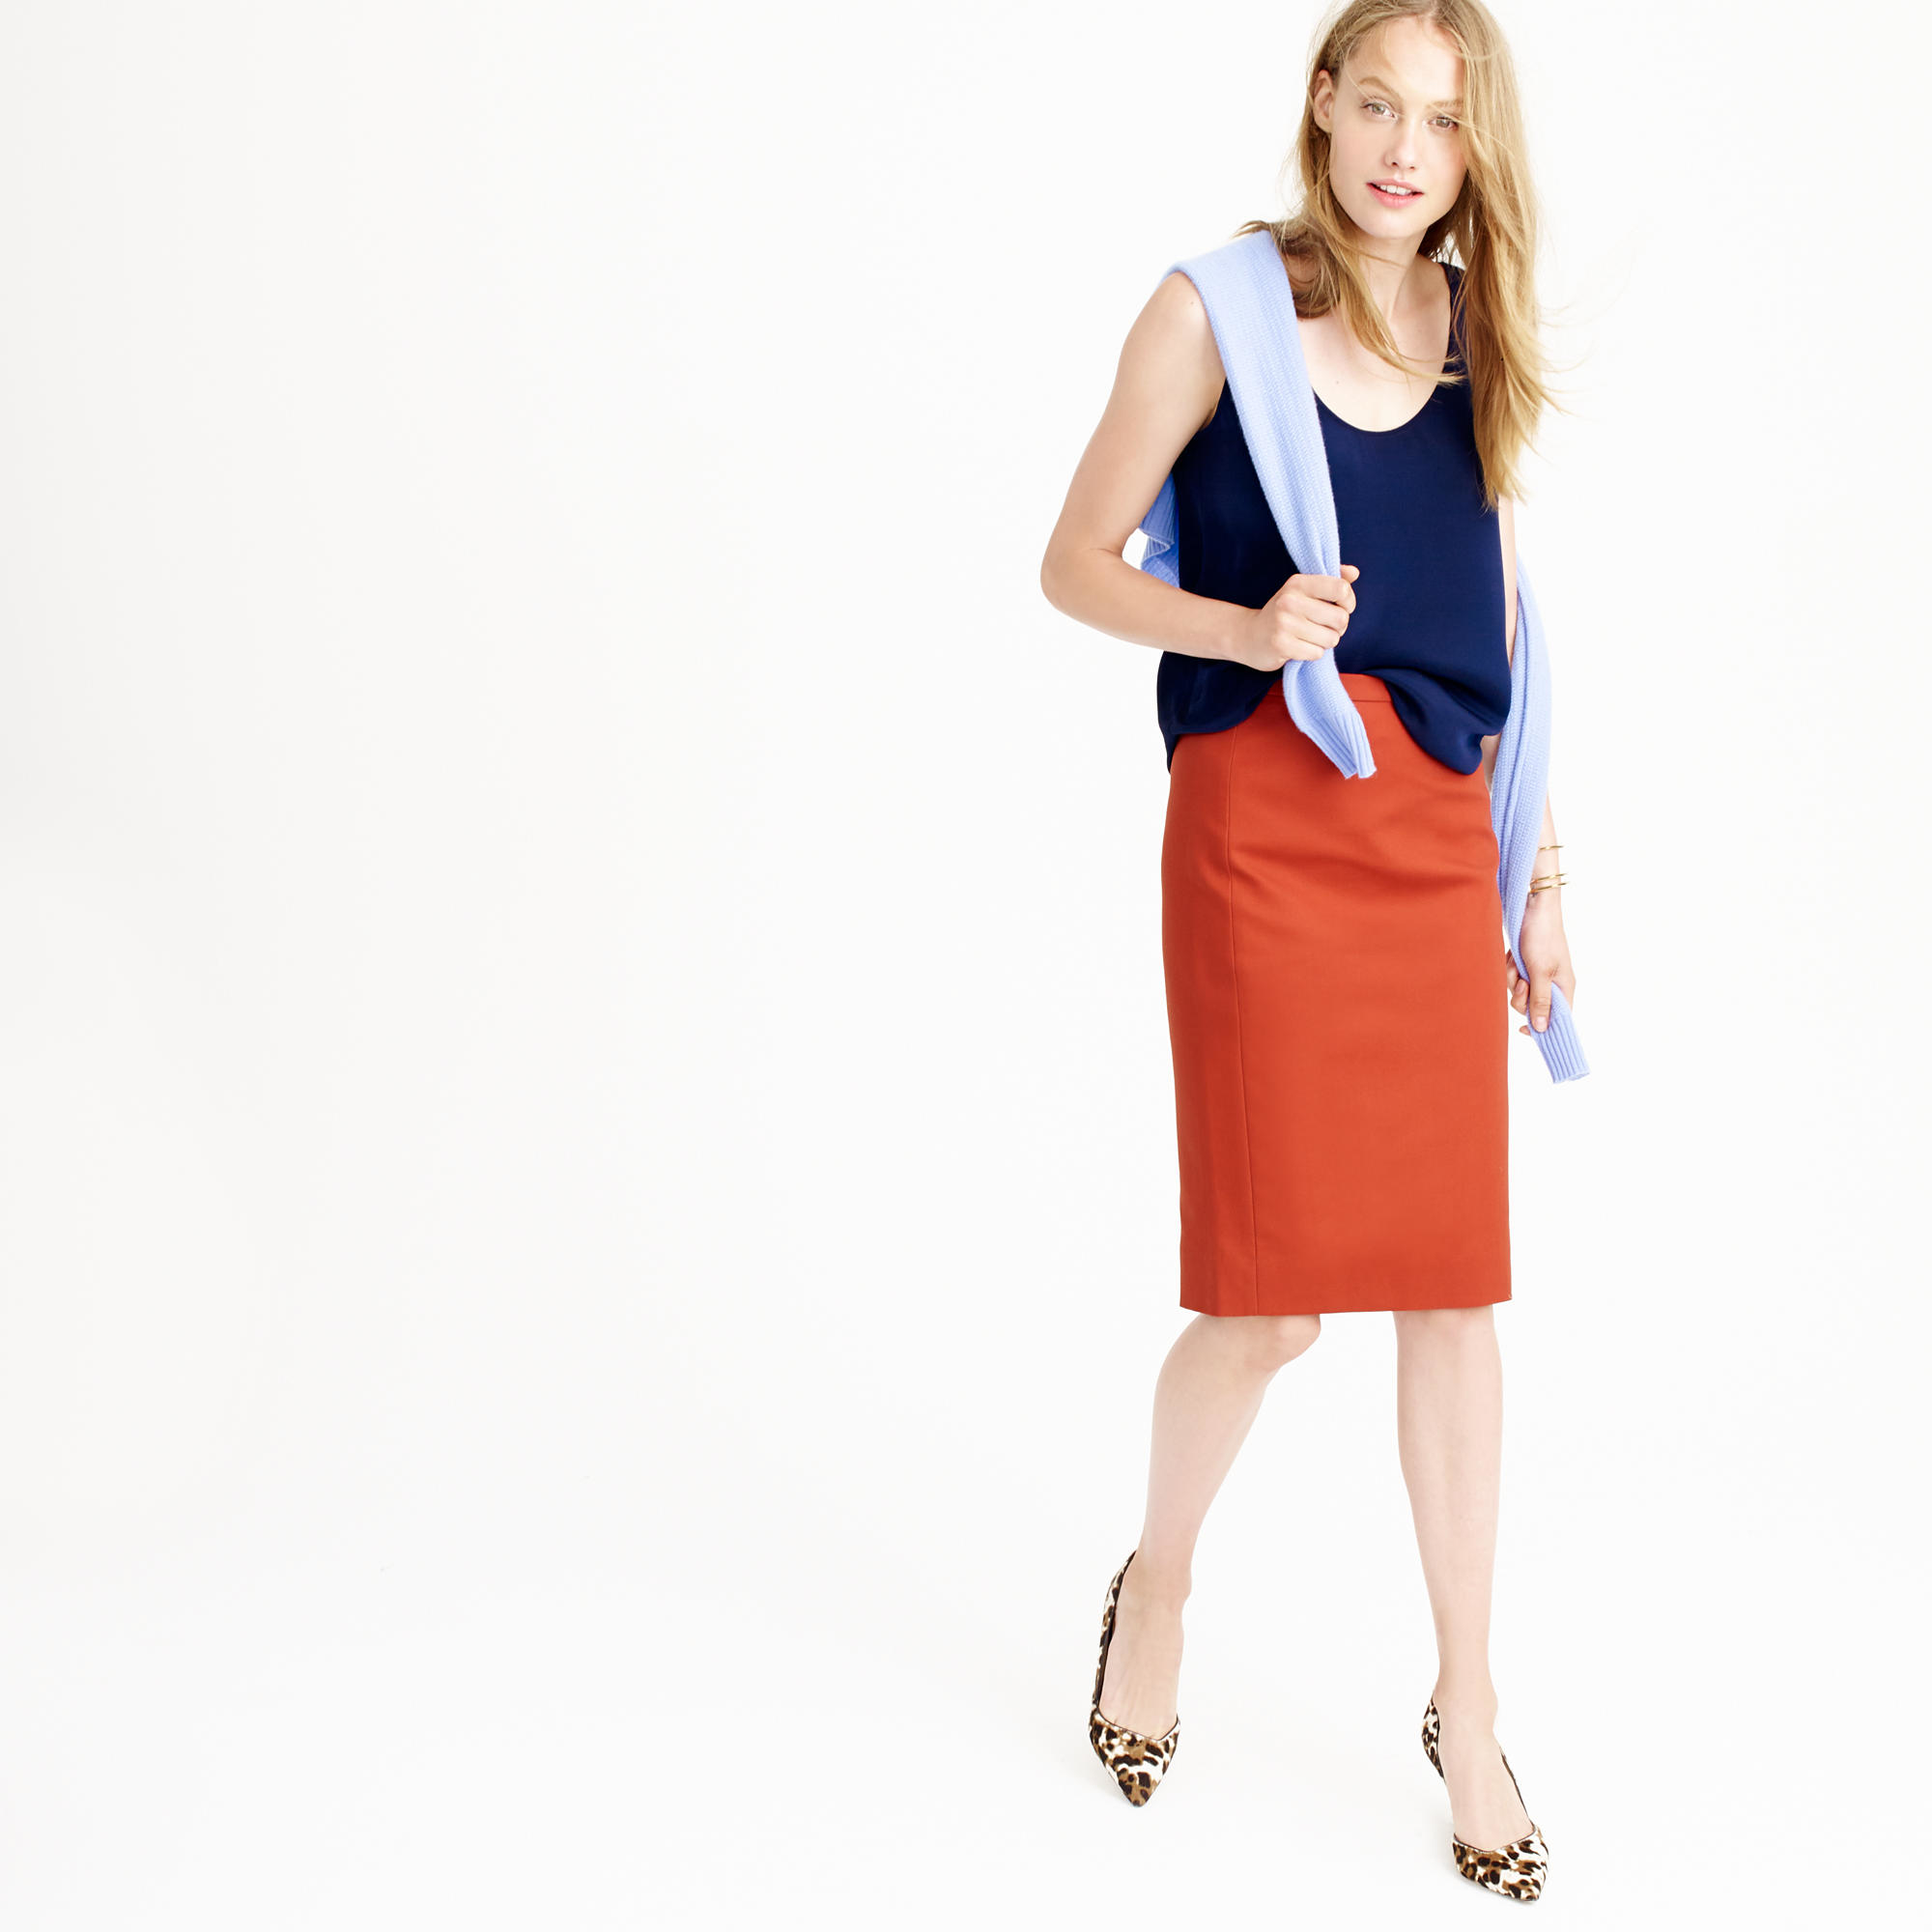 j crew no 2 pencil skirt in cotton twill in